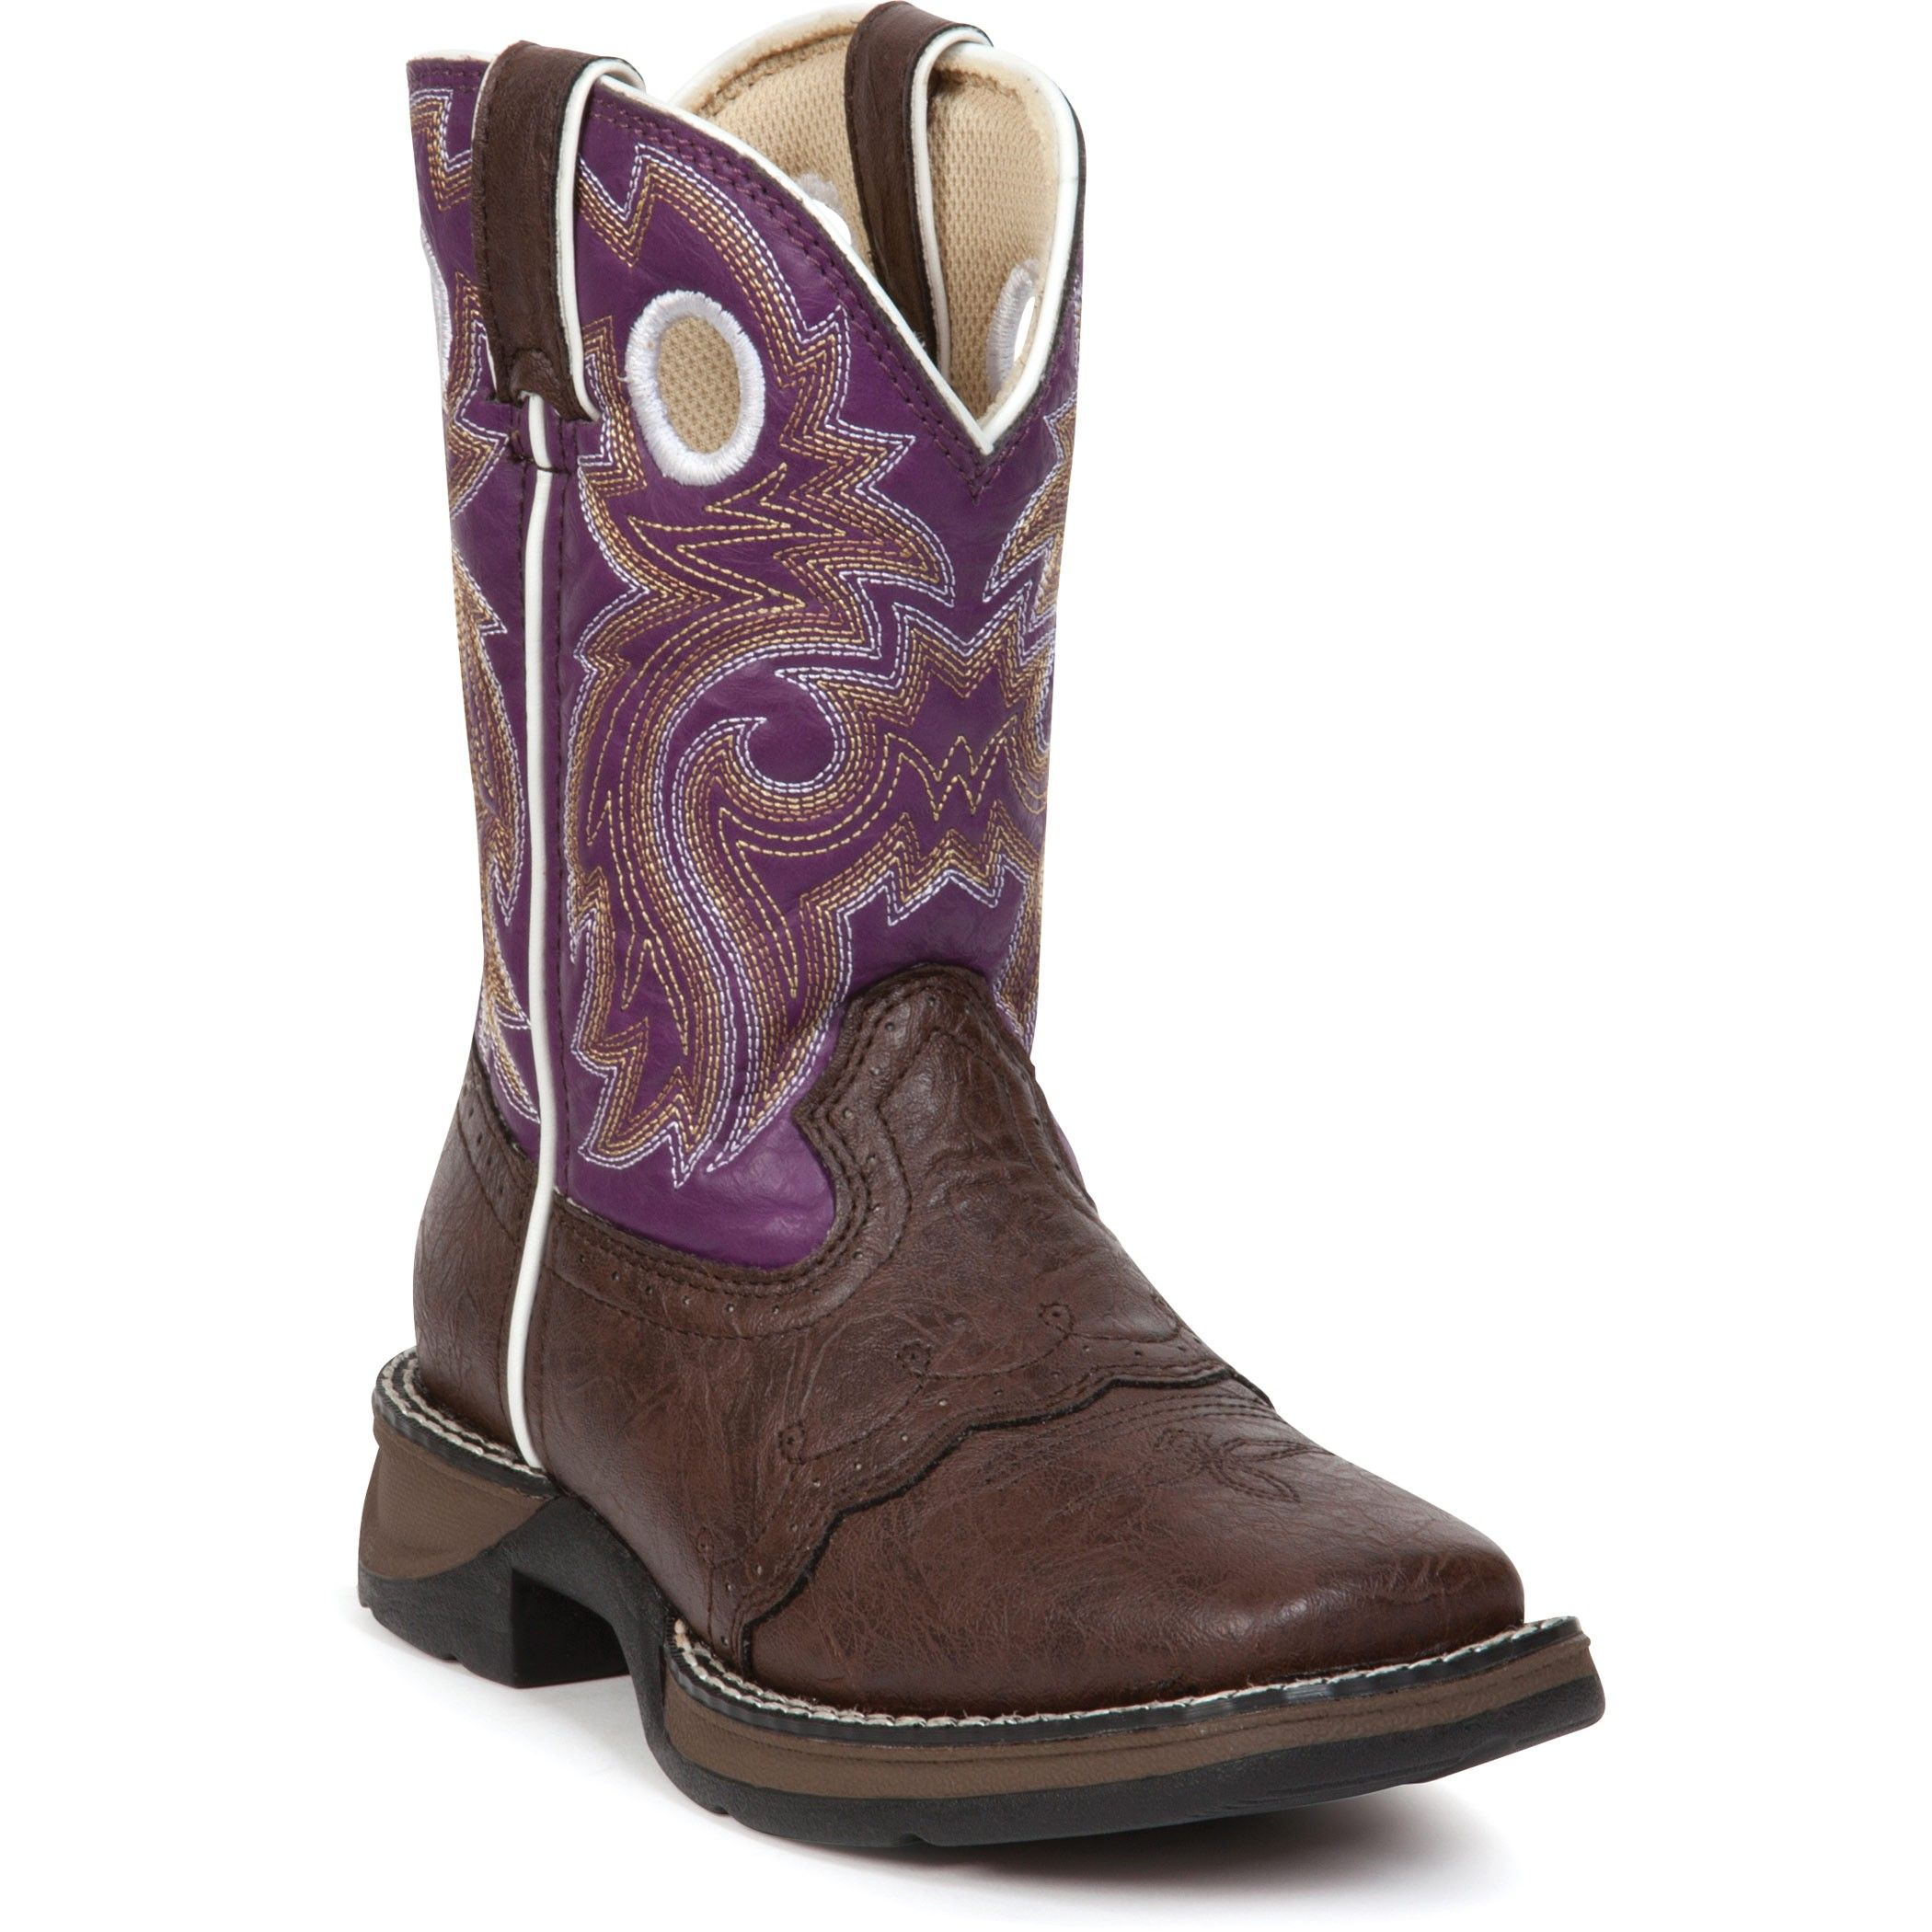 Cowboy Boots For Girls - Cr Boot